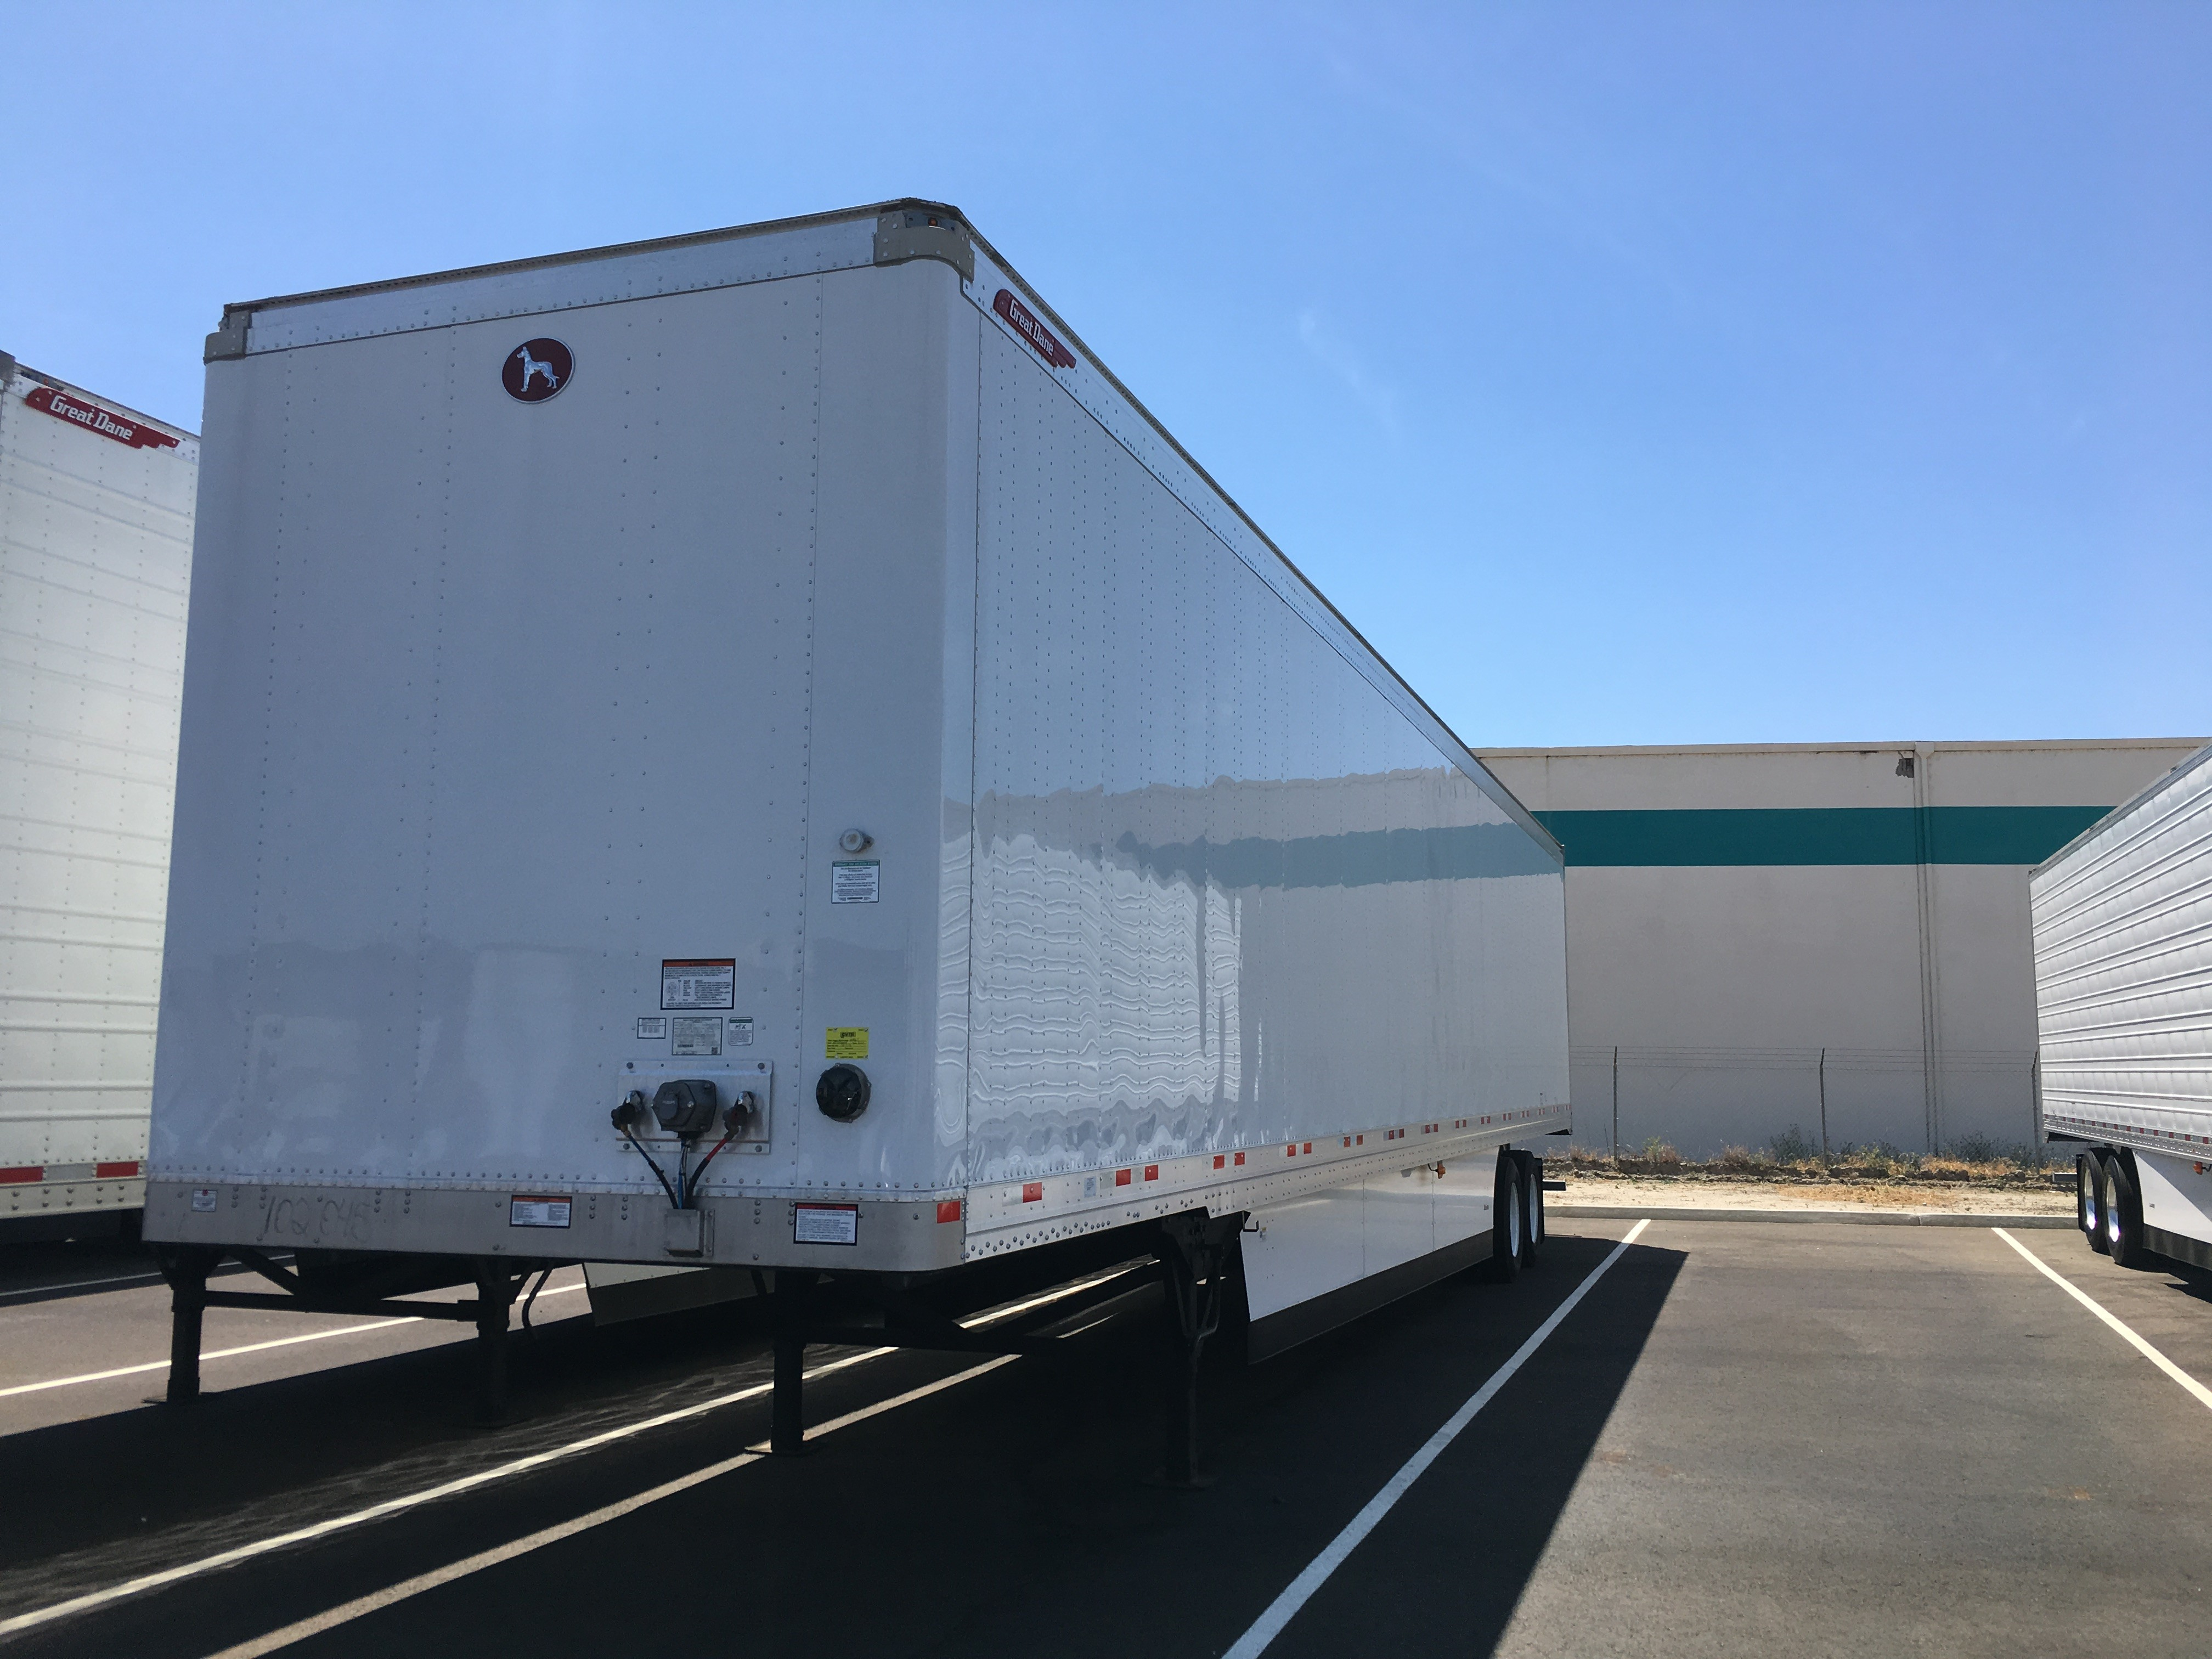 Our Featured Trailer Is A 2007 Great Dane 53 X 102 Reefer Trailer